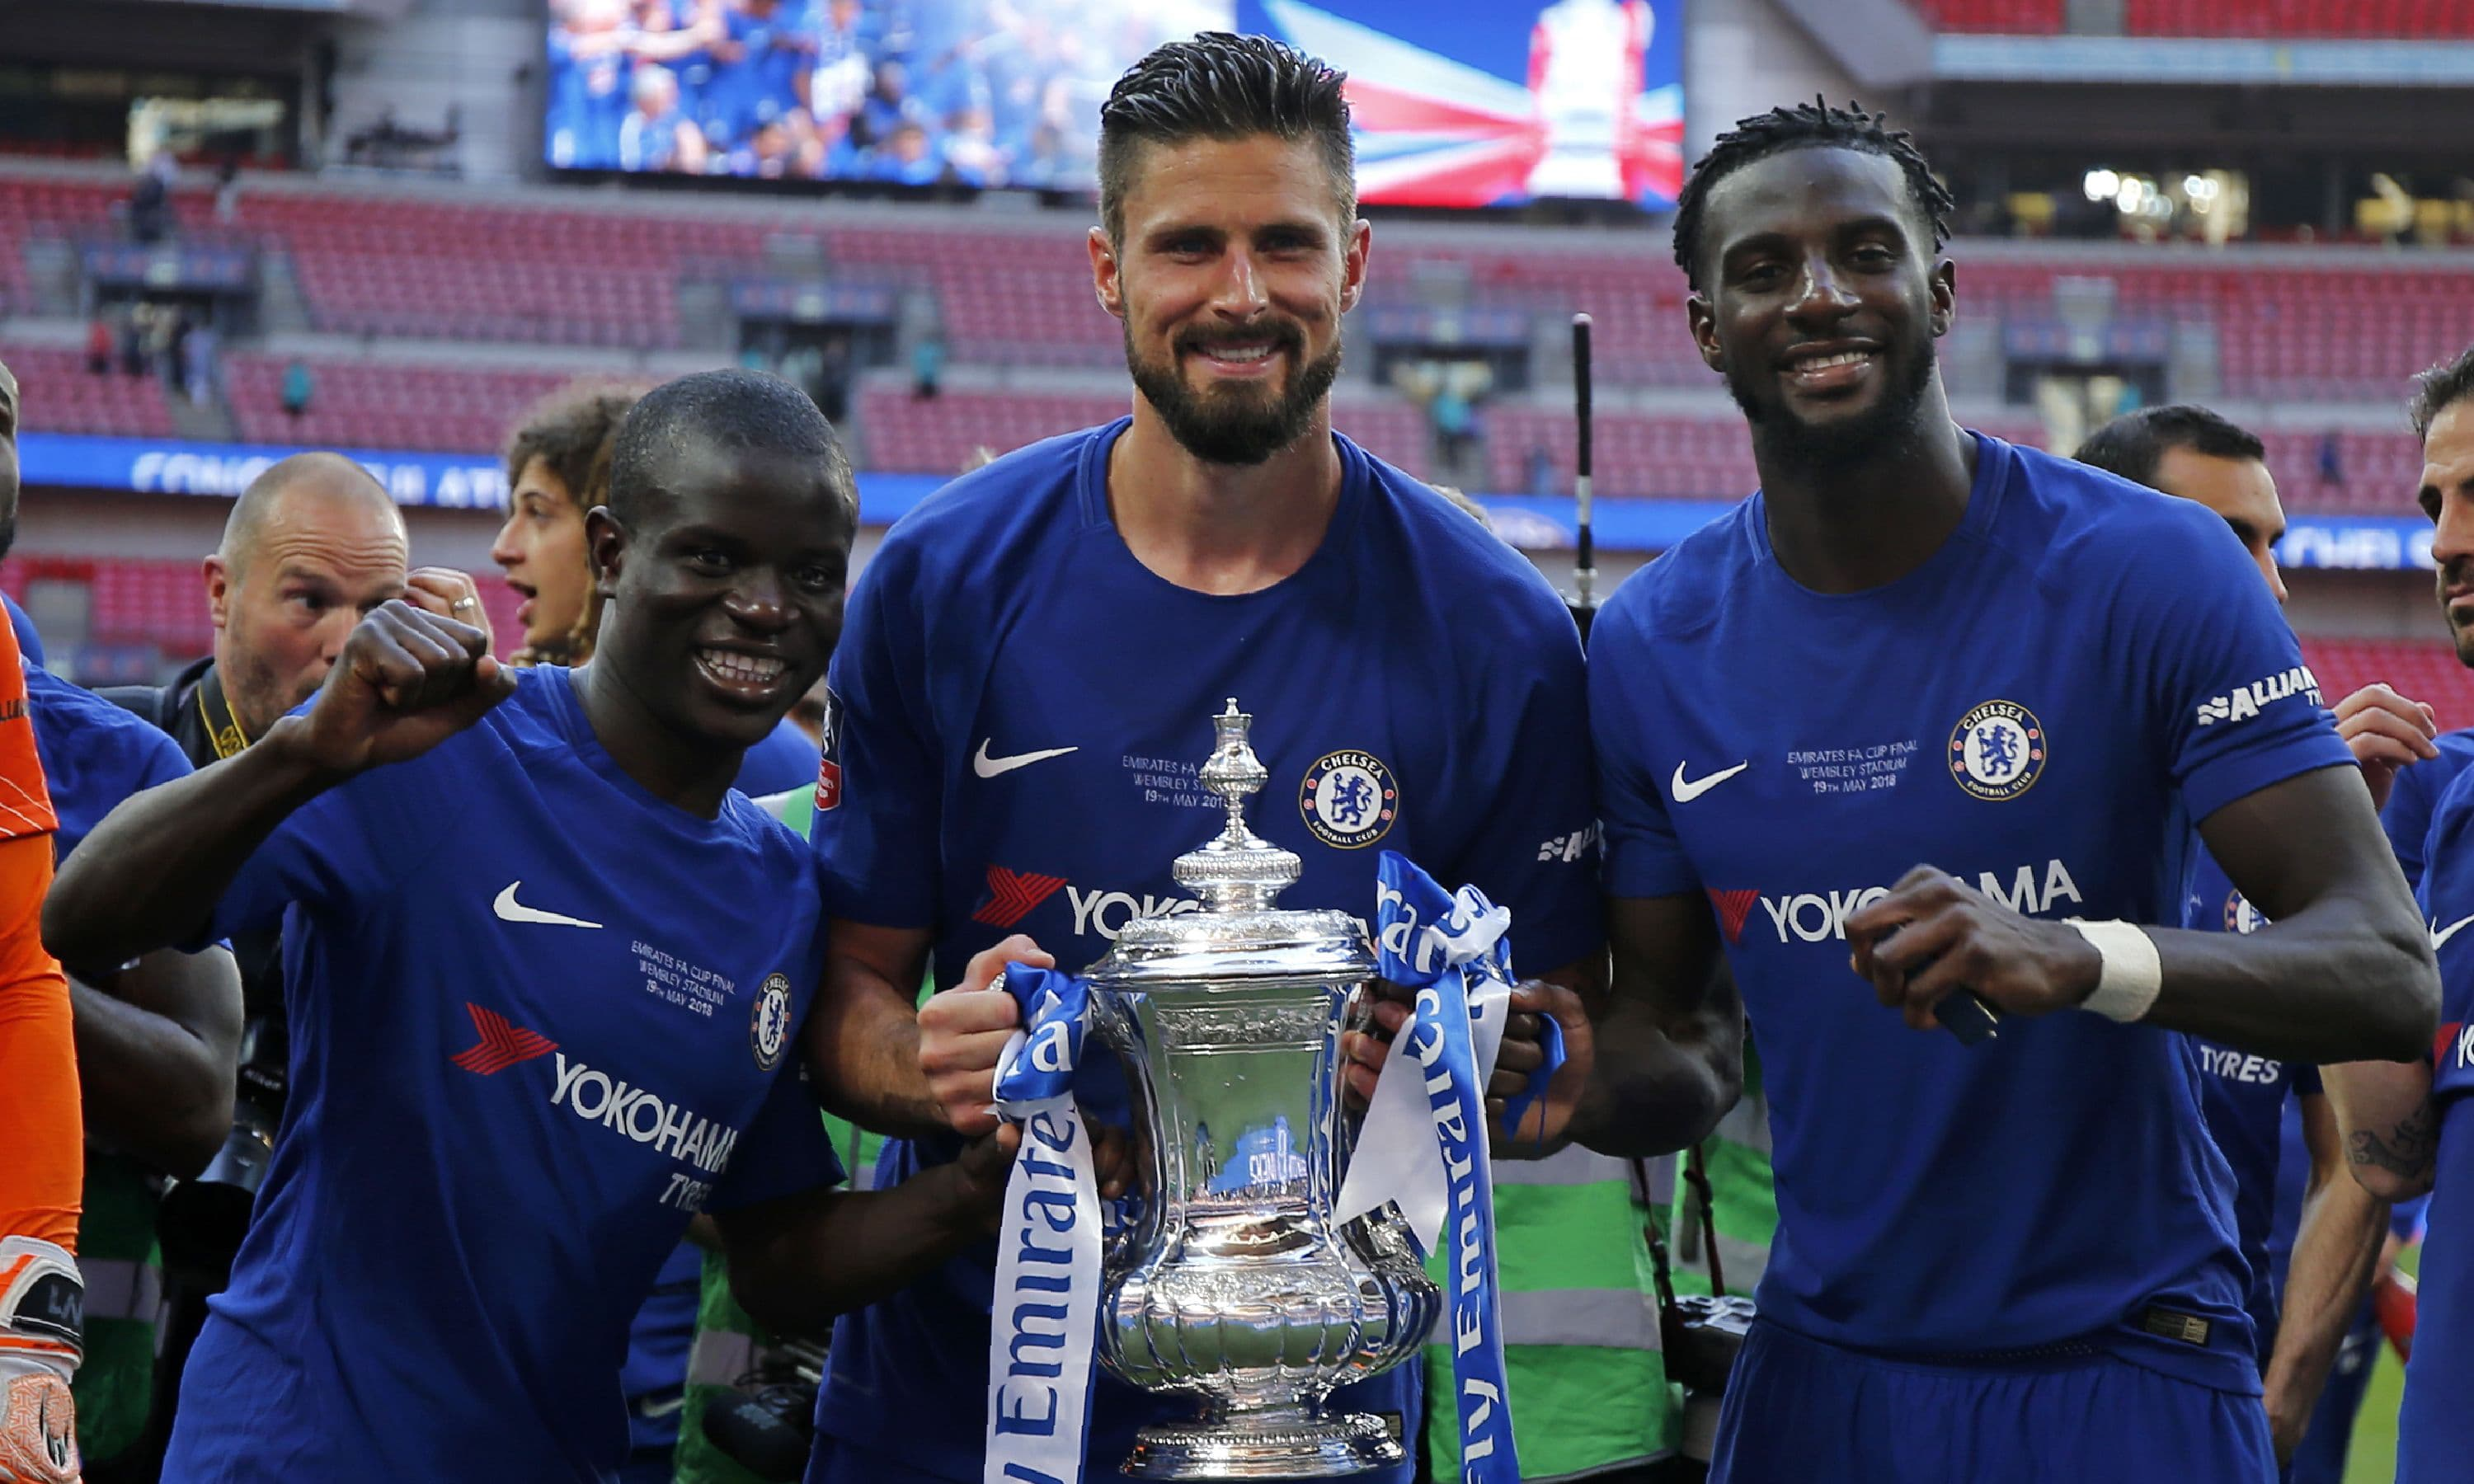 Olivier Giroud with the FA Cup trophy, could the Frenchman lift this famous trophy again under Thomas Tuchel?